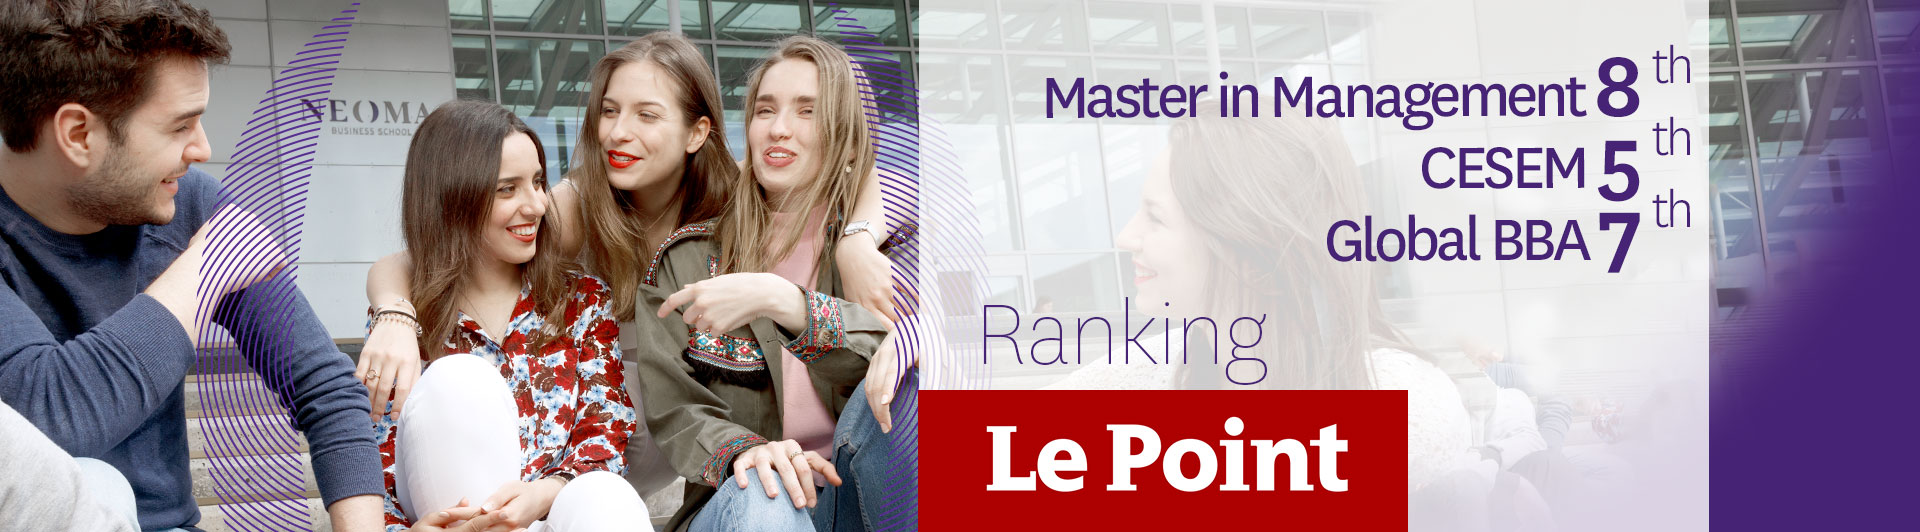 Le point Ranking 2020